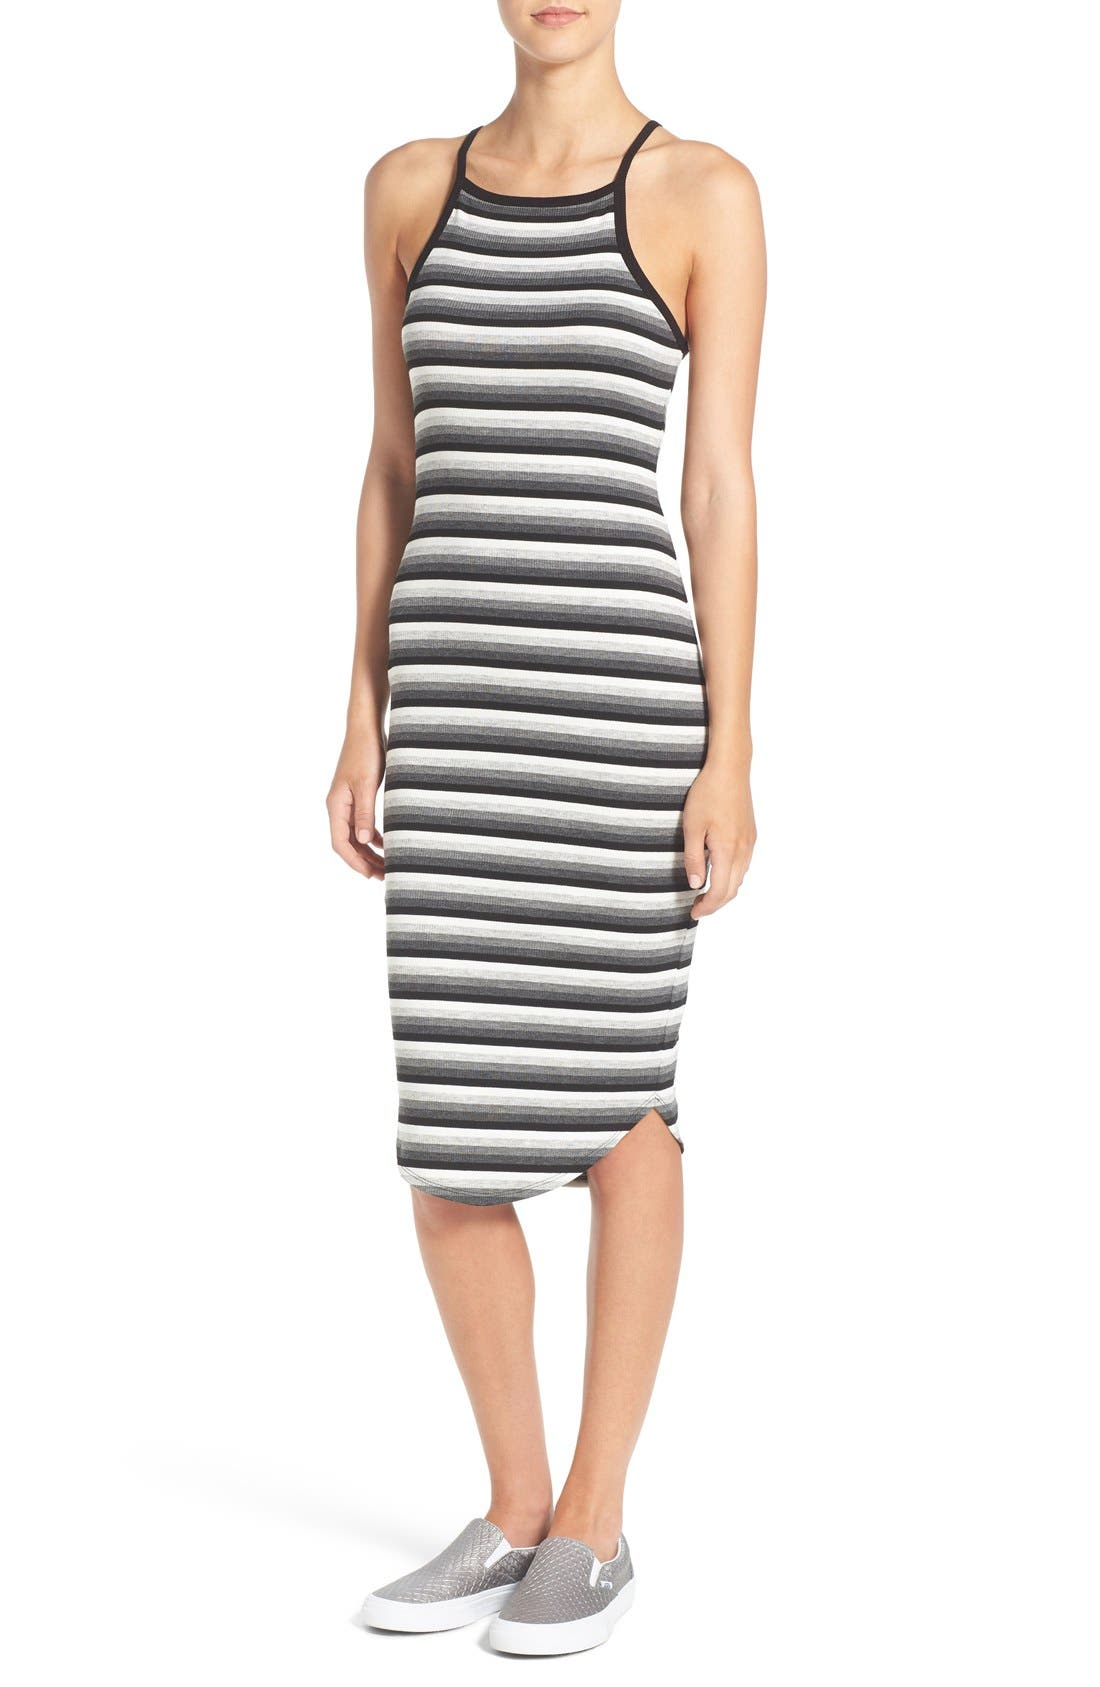 SOPRANO Stripe Rib Knit Midi Dress, Main, color, 001